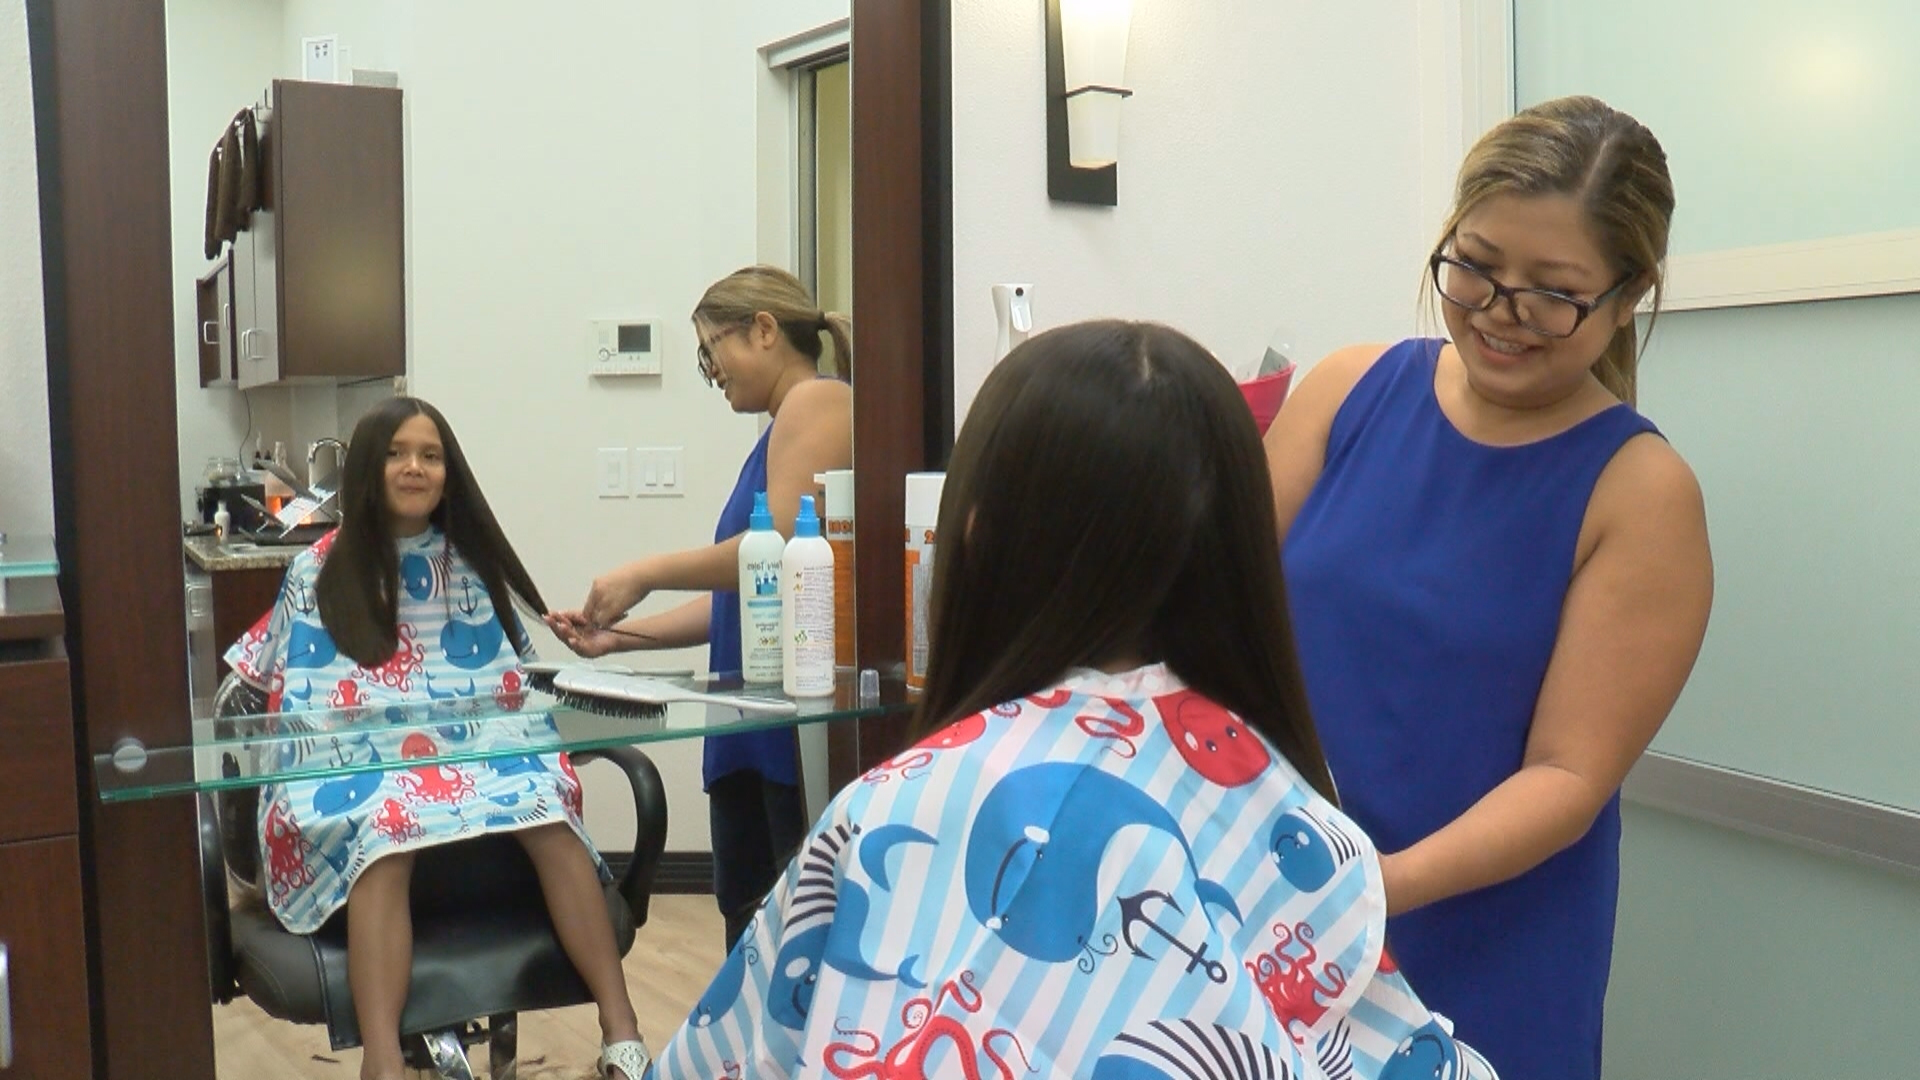 Students receive a free back-to-school haircut, with a school supply donation, on Sunday, August 13, 2017, at My Salon Suite in Las Vegas. (Chad Graves/KSNV)